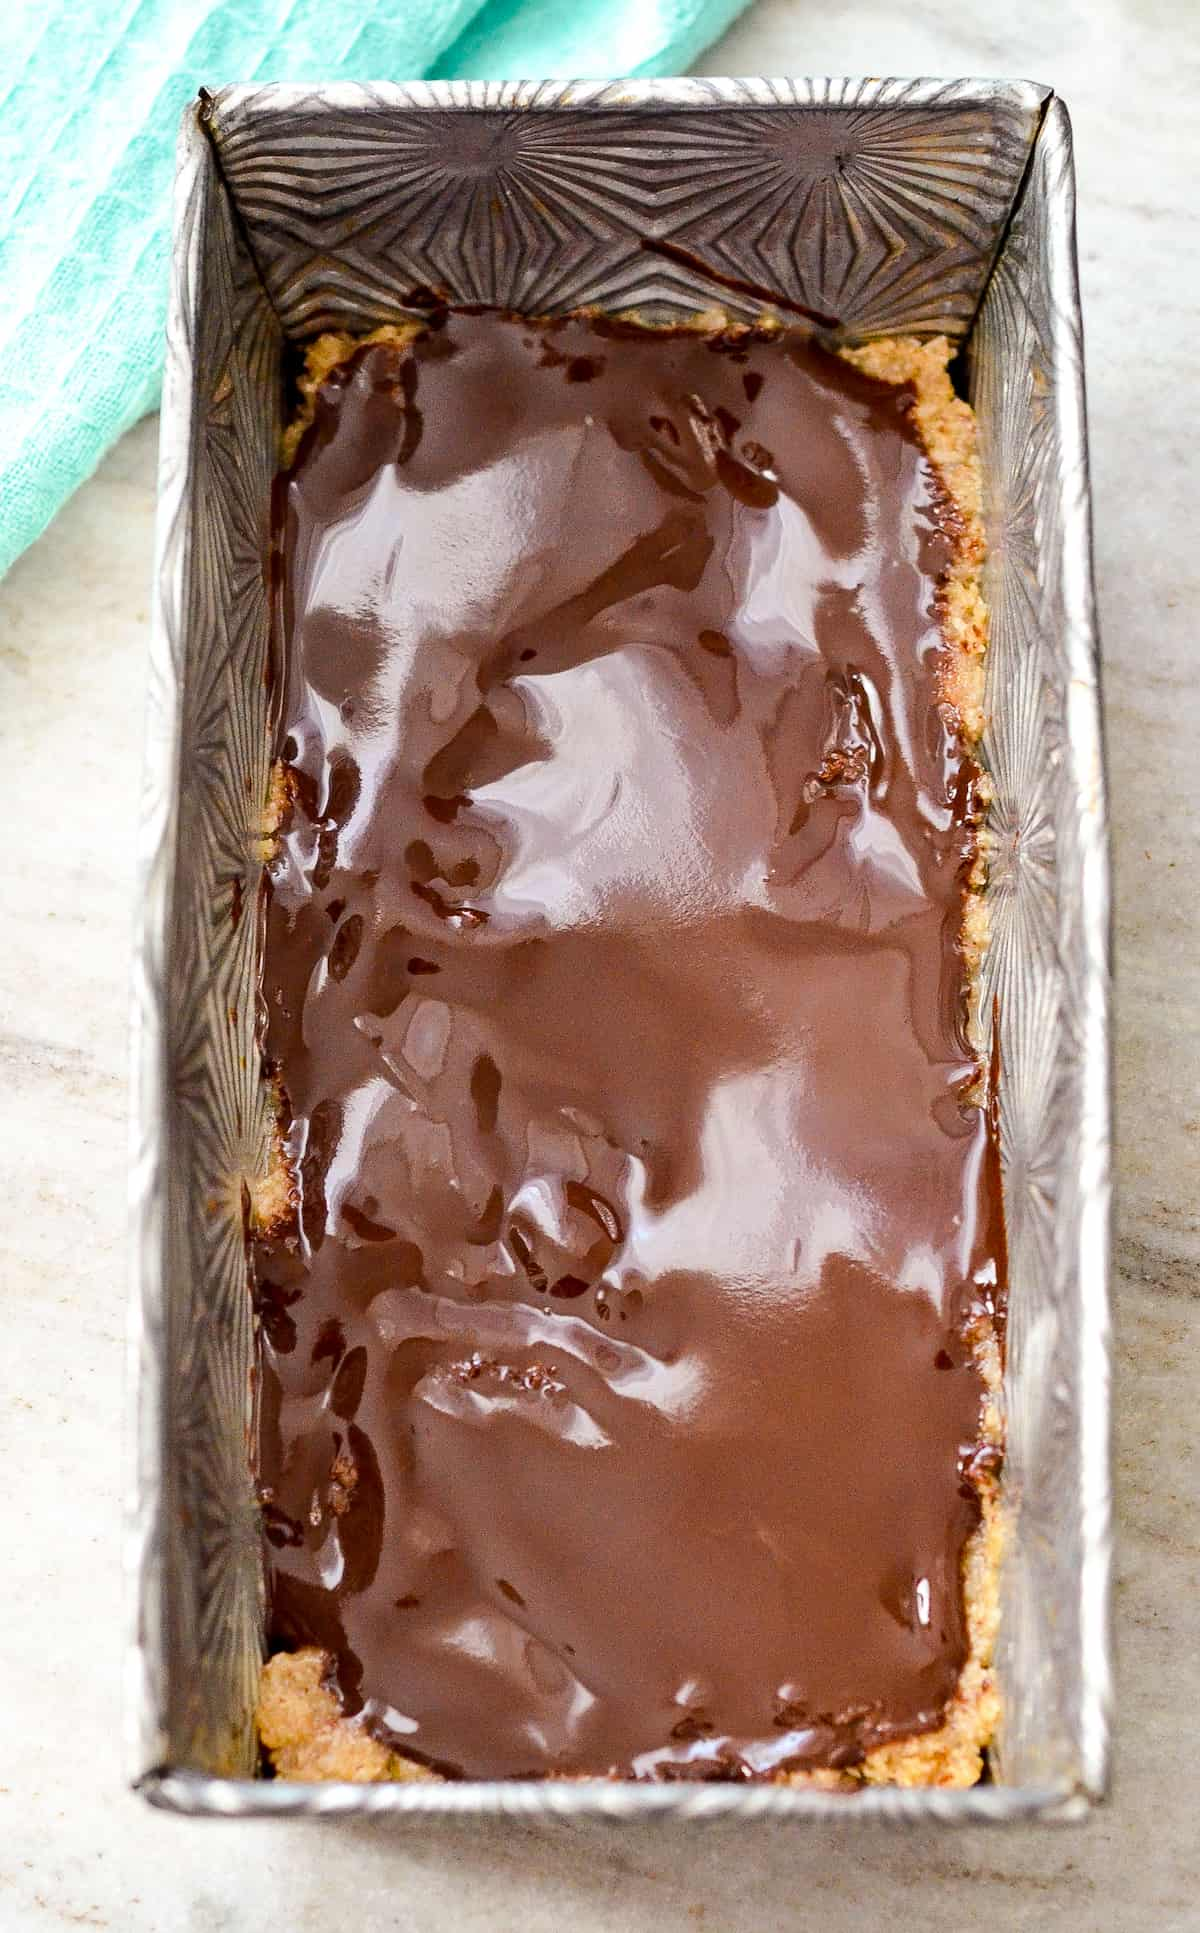 Overview photo of no bake bars with chocolate layer on top.